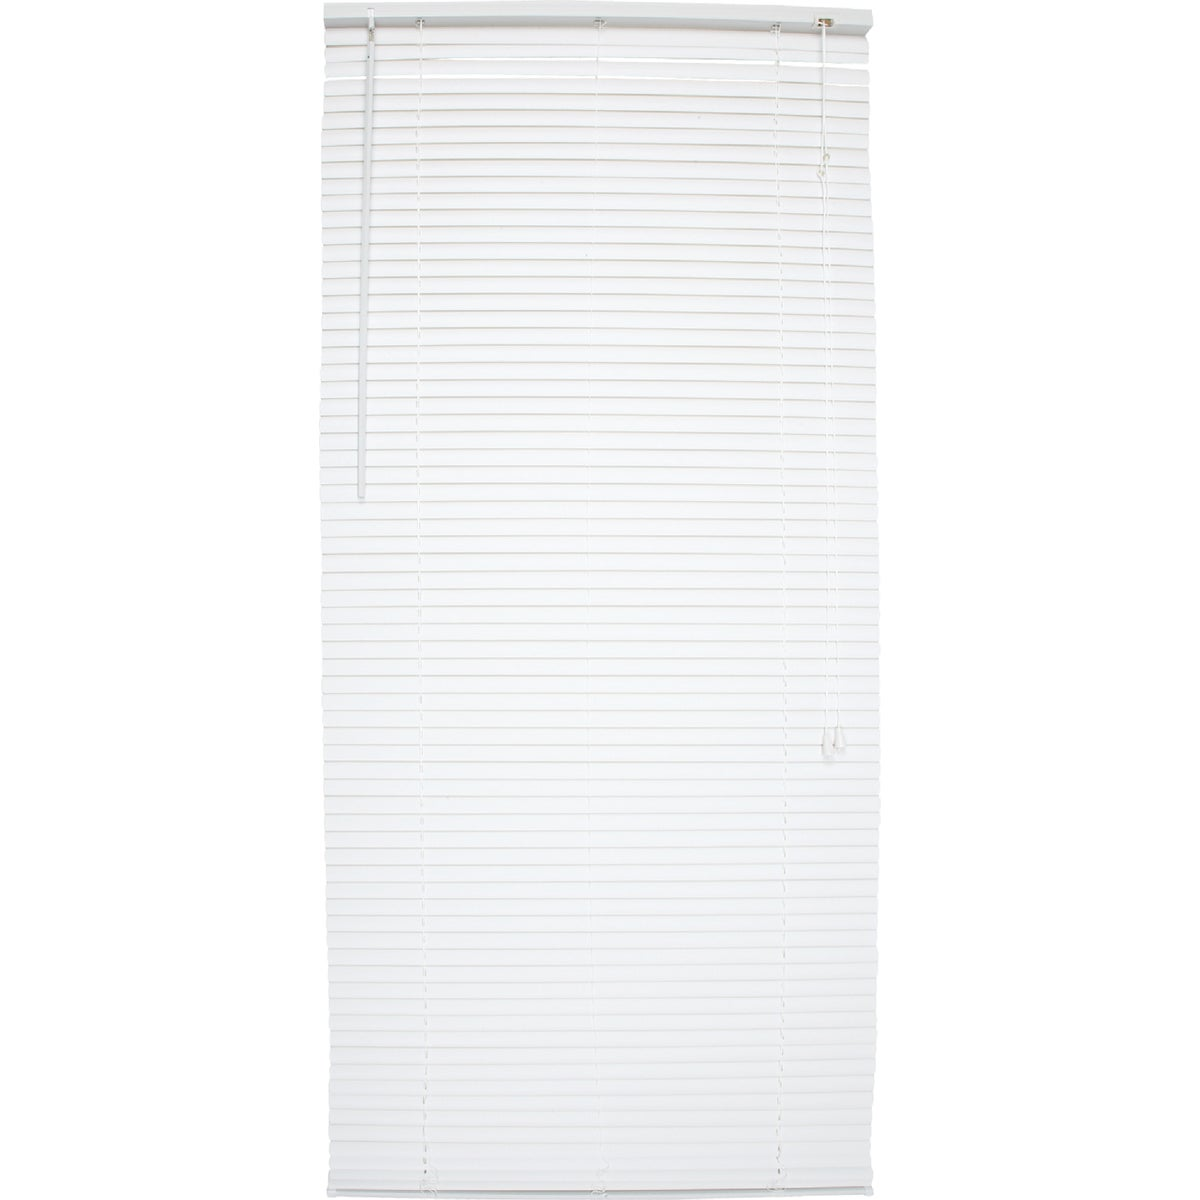 28X64 WHITE MINI BLIND - 614971 by Lotus Wind Incom